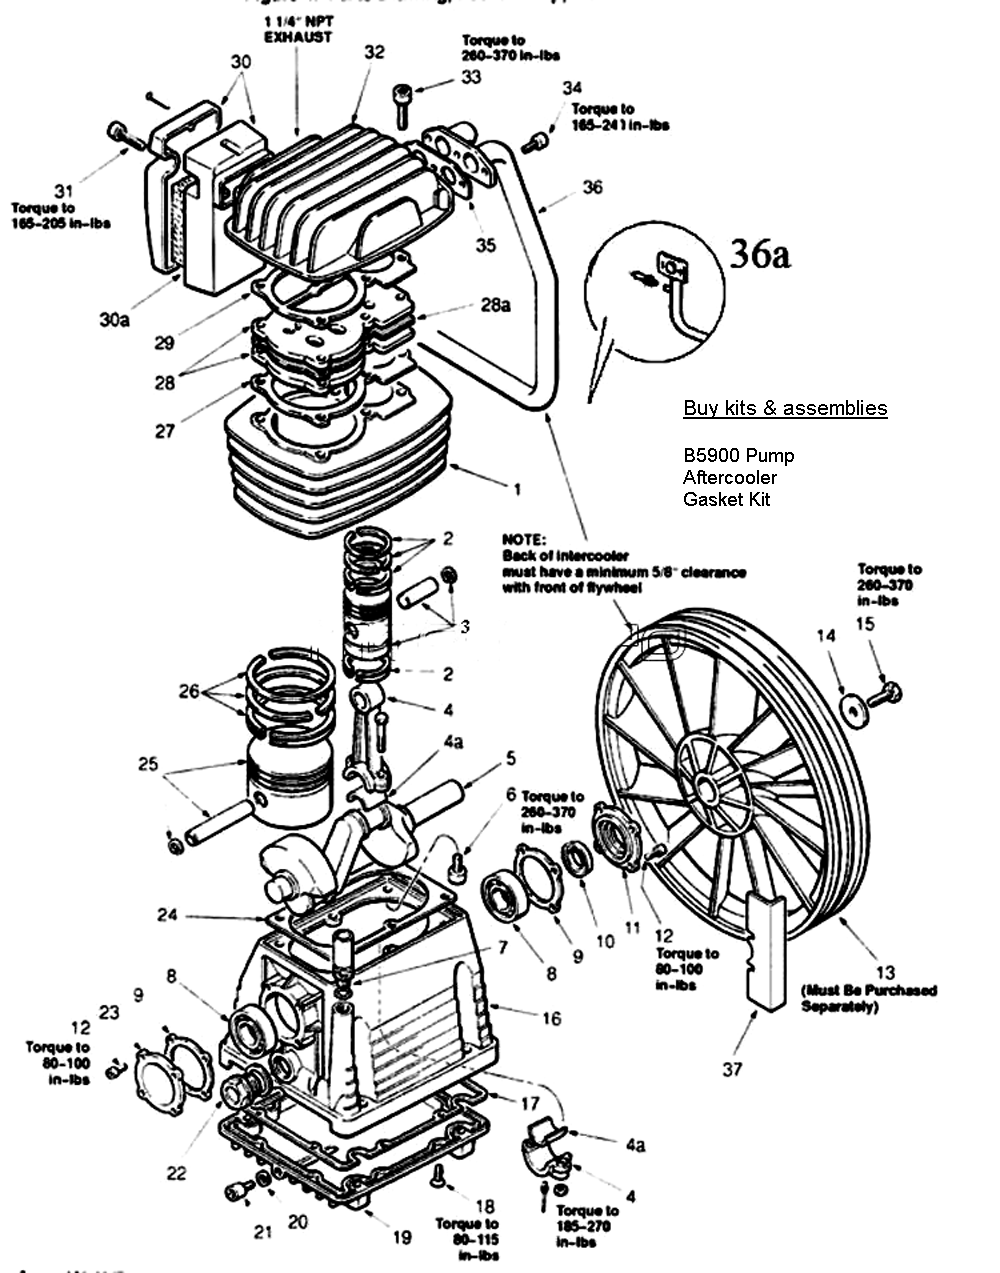 Devilbiss Air Compressor Wiring Diagram : 39 Wiring